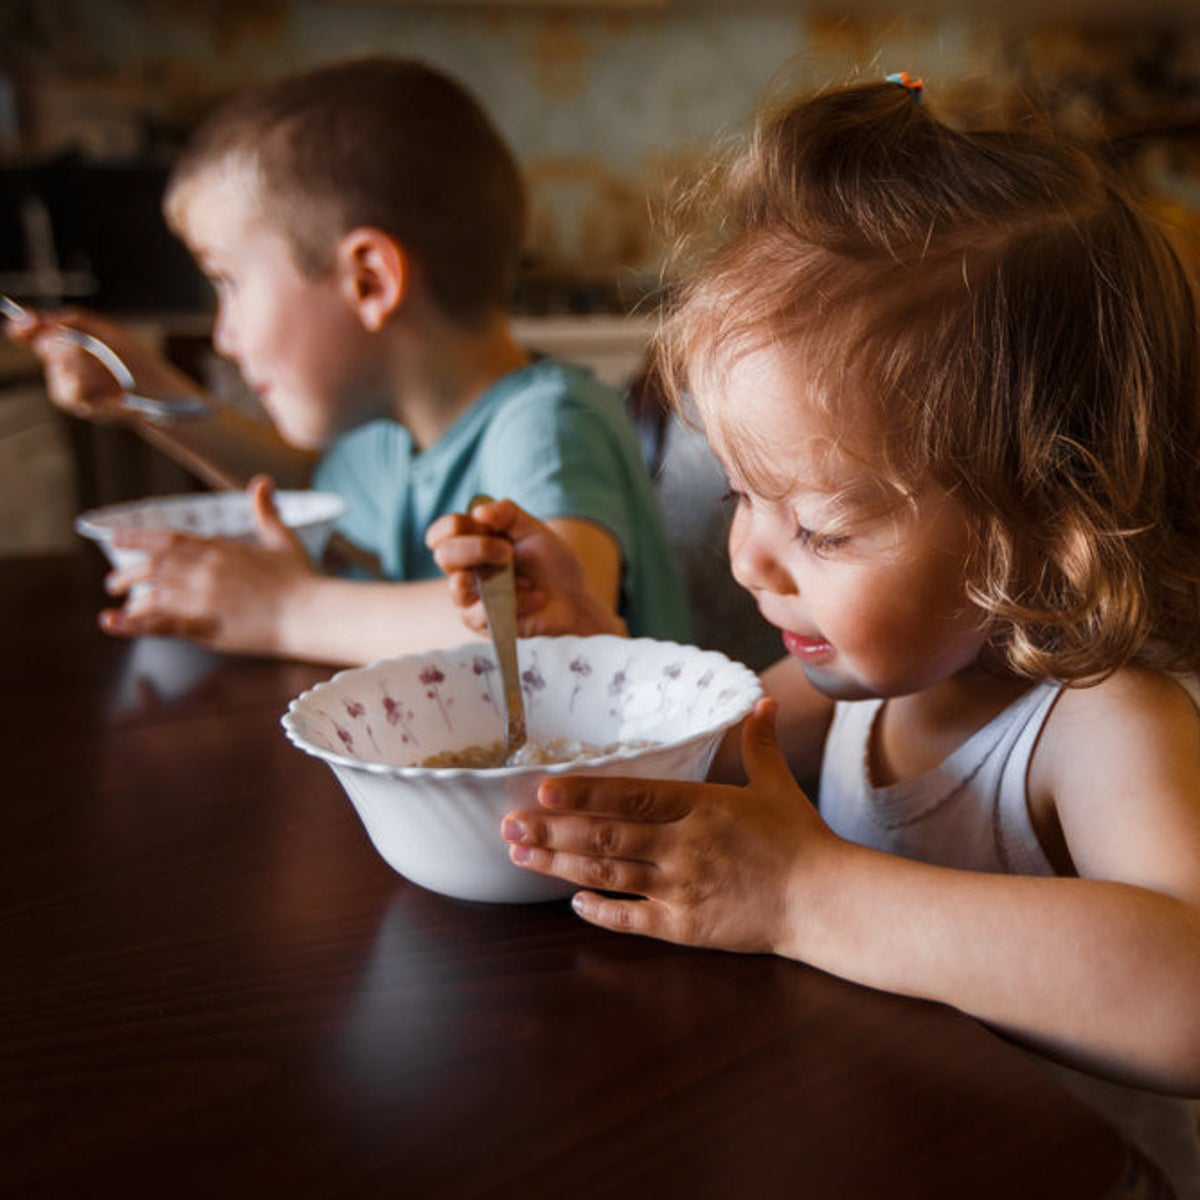 """Breakfast time. """"Children are fussy because we made them fussy... Obviously, colorful, sugar-rich cereals will tempt kids more than the hot cereal we prepare ourselves,"""" says Monsonego Ornan."""